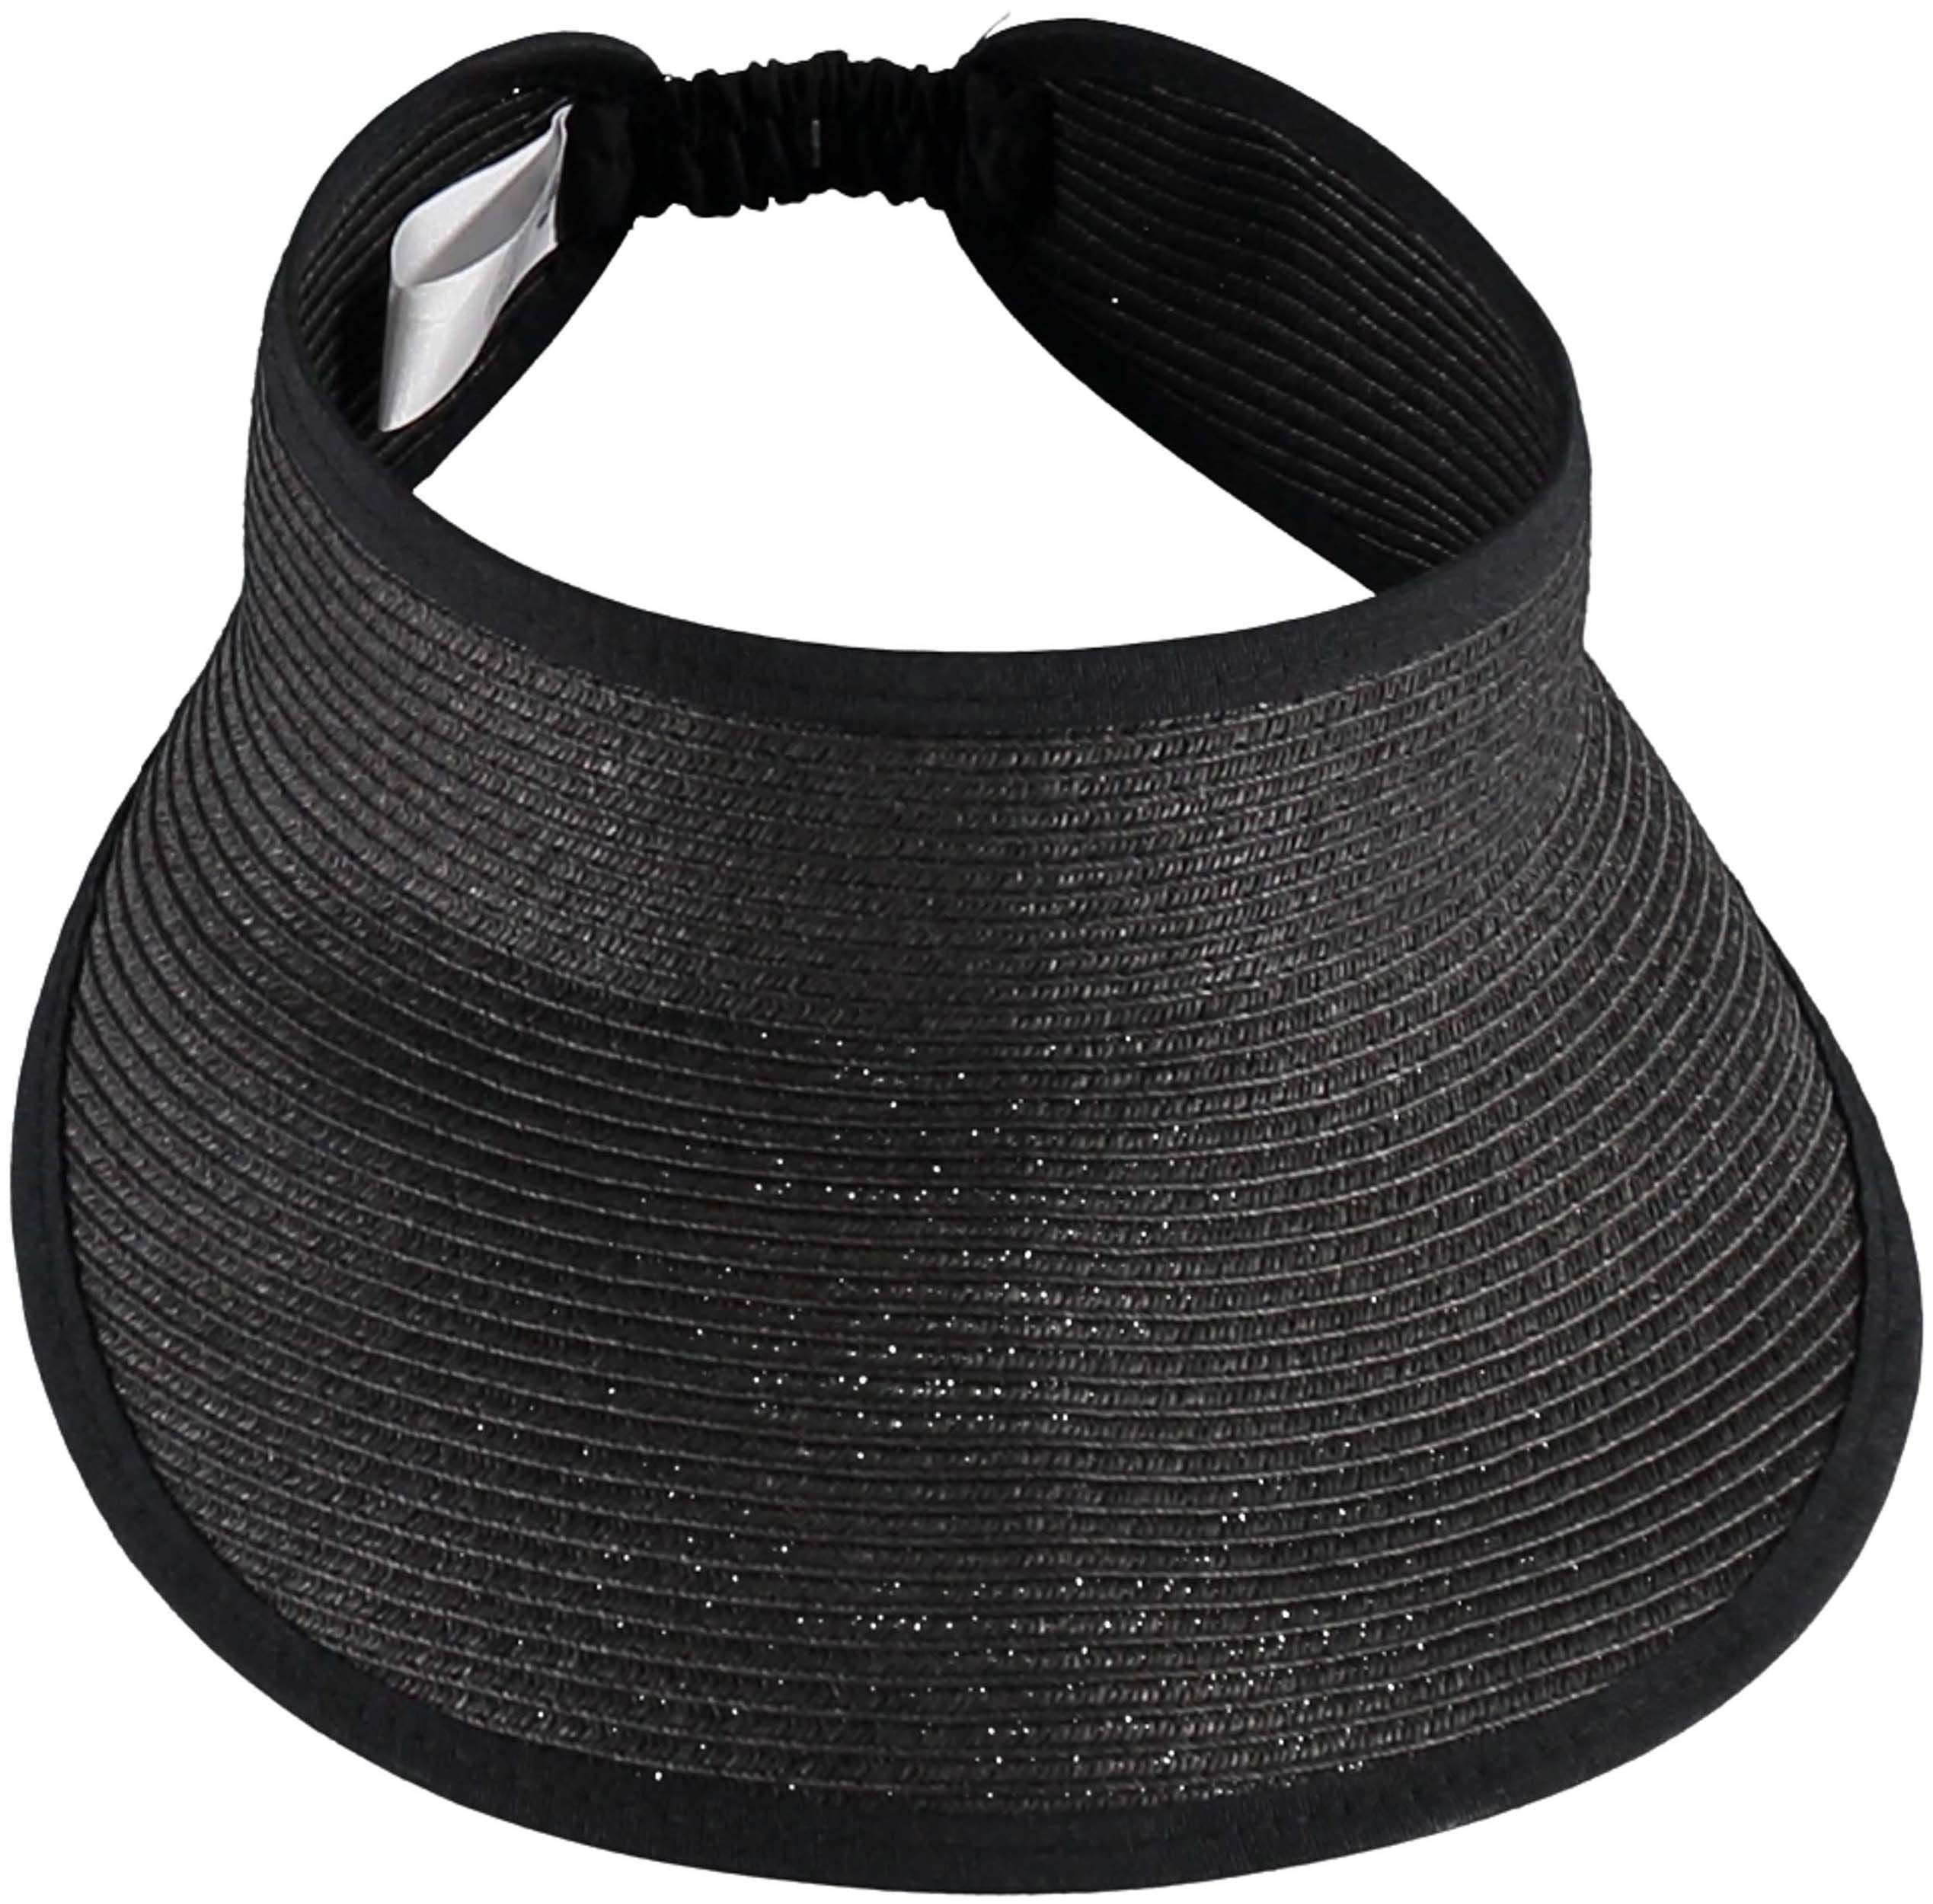 Straw Fashion Beach Visor